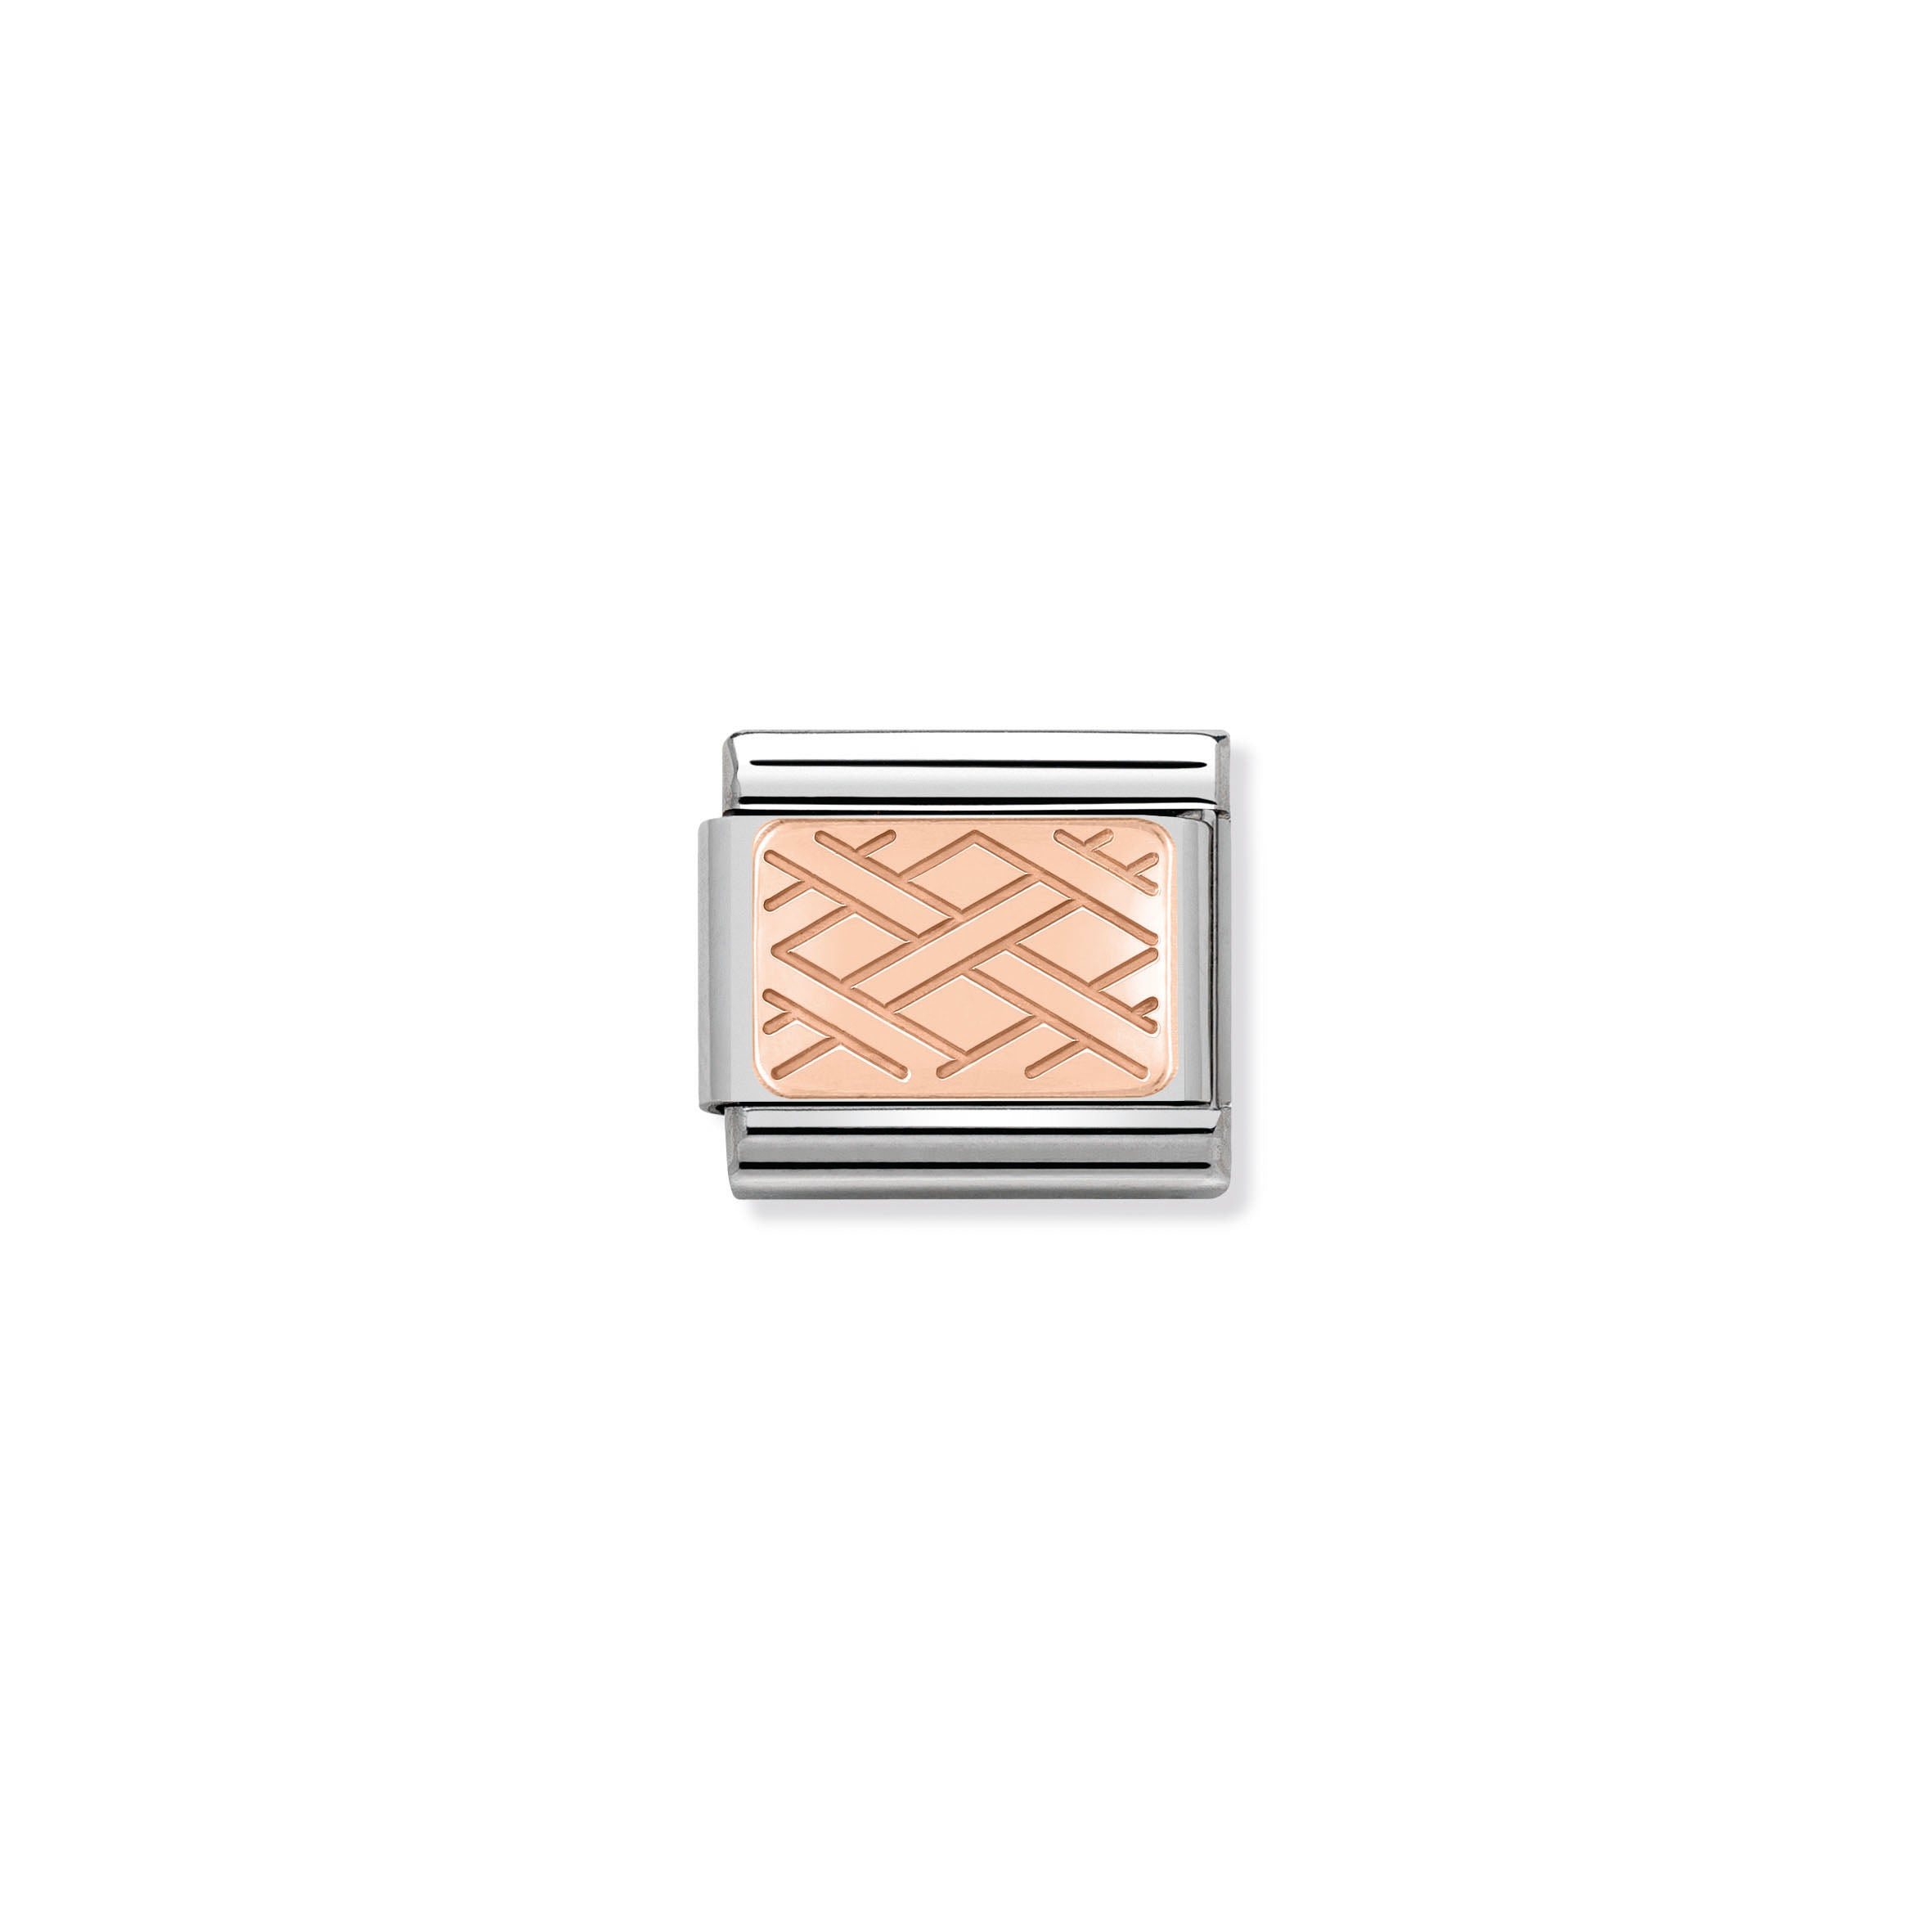 NOMINATION - Composable 430101 03 Classic ROSE GOLD PLATE st/st, 9ct rose gold CUSTOM (Weave)